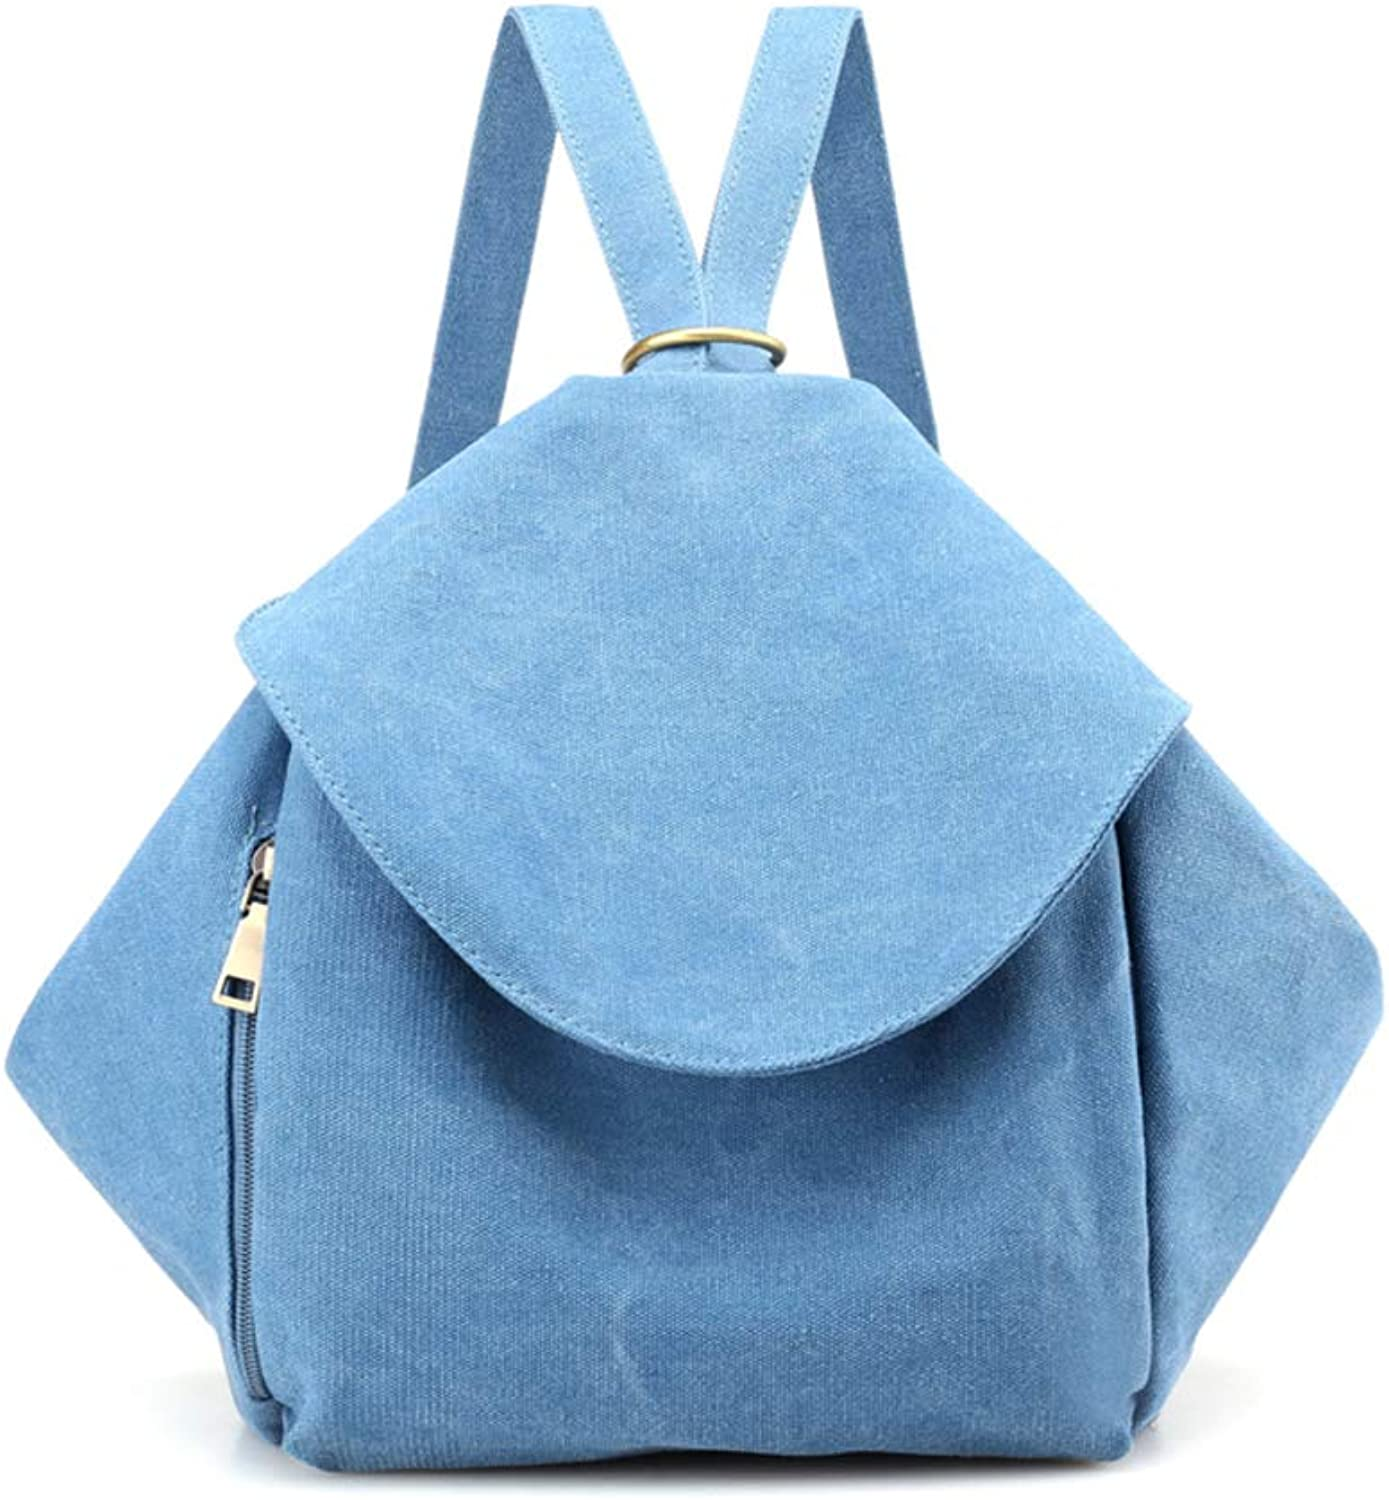 Casual Canvas Backpack,Women's MultiPurpose Diagonal PackageA